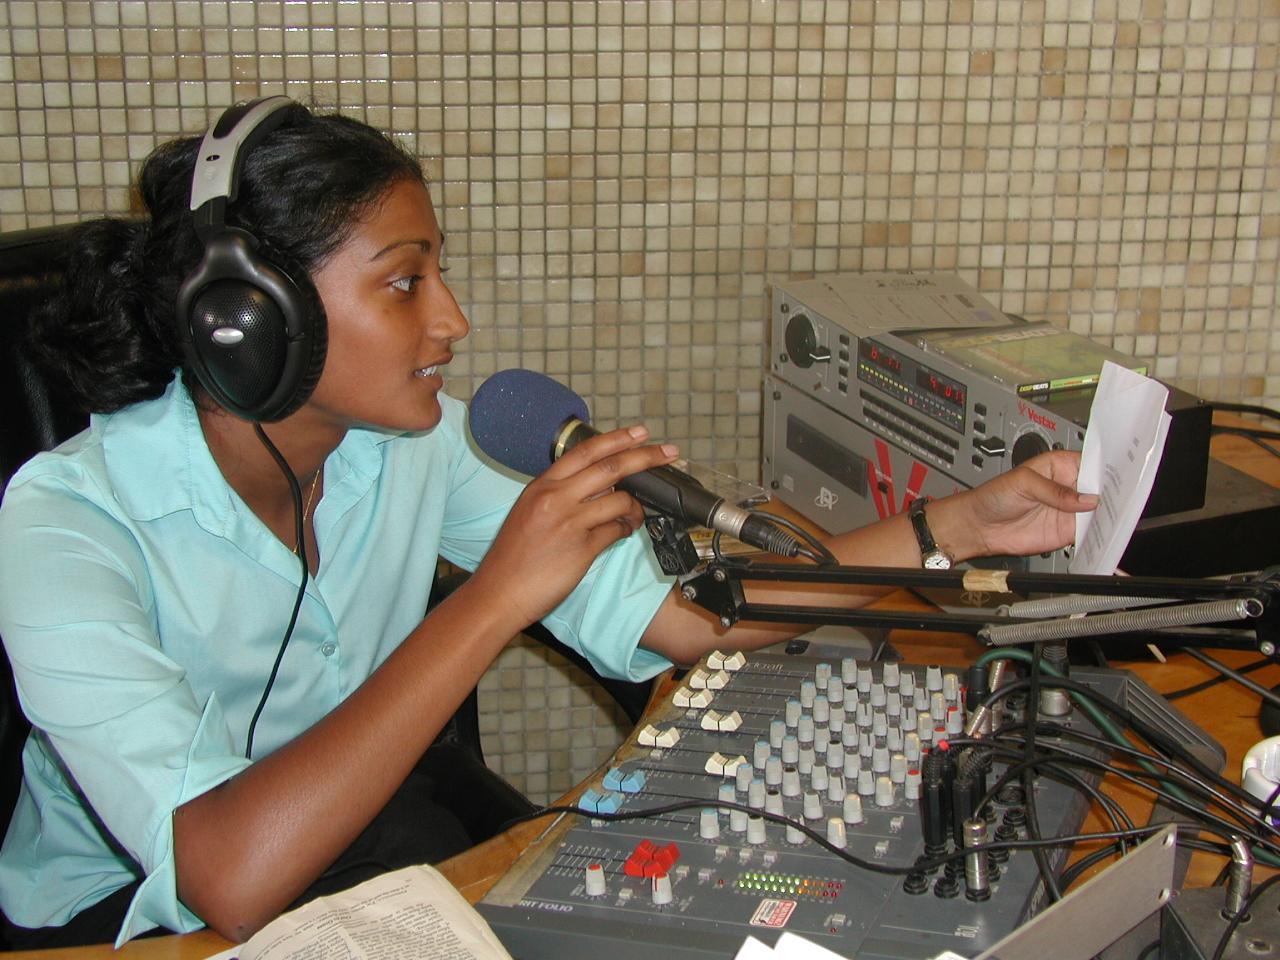 An intern at work at our journalism placement in Ghana